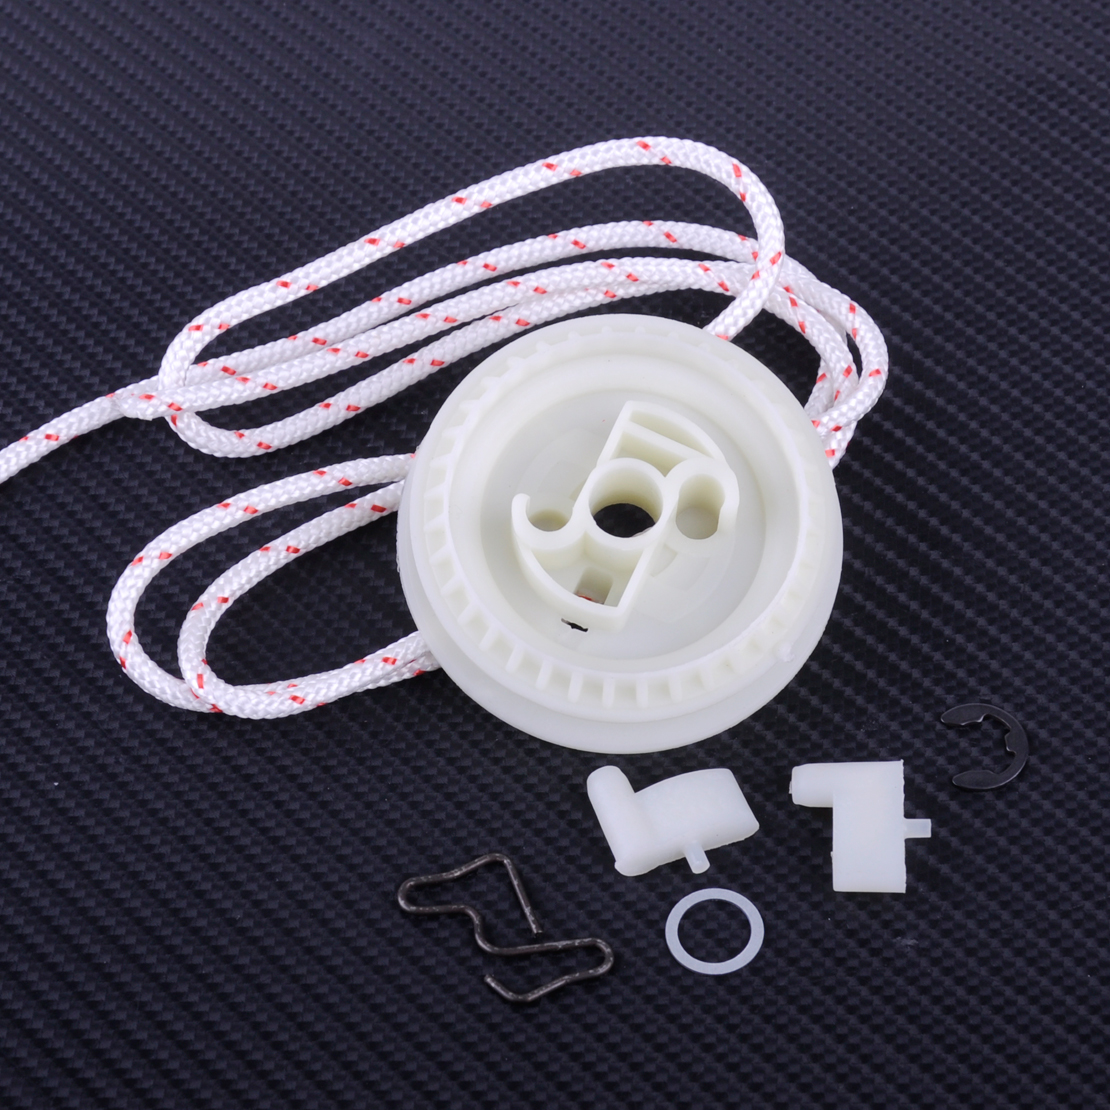 LETAOSK New Recoil Starter Rope Pulley & Pawl Kit Replacement Fit For Stihl 021 023 025 MS210 MS230 MS250